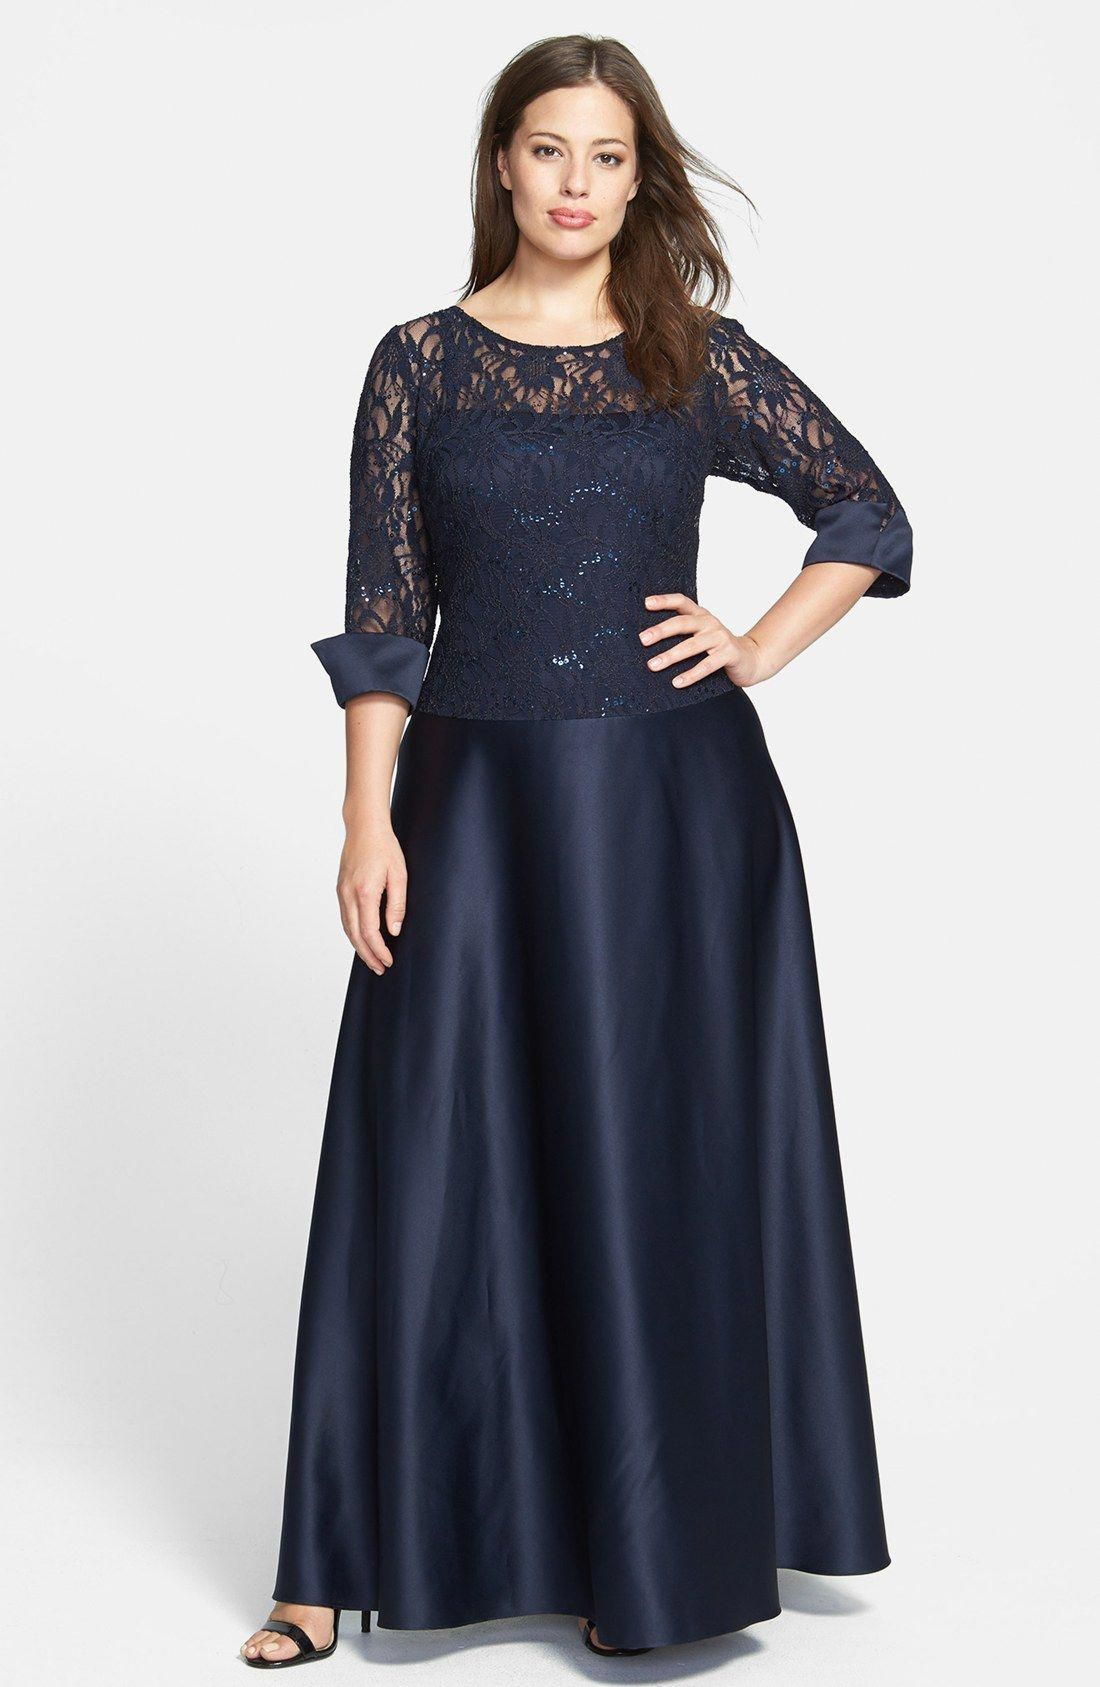 Plus Size Mother Of The Bride Dresses Nordstrom